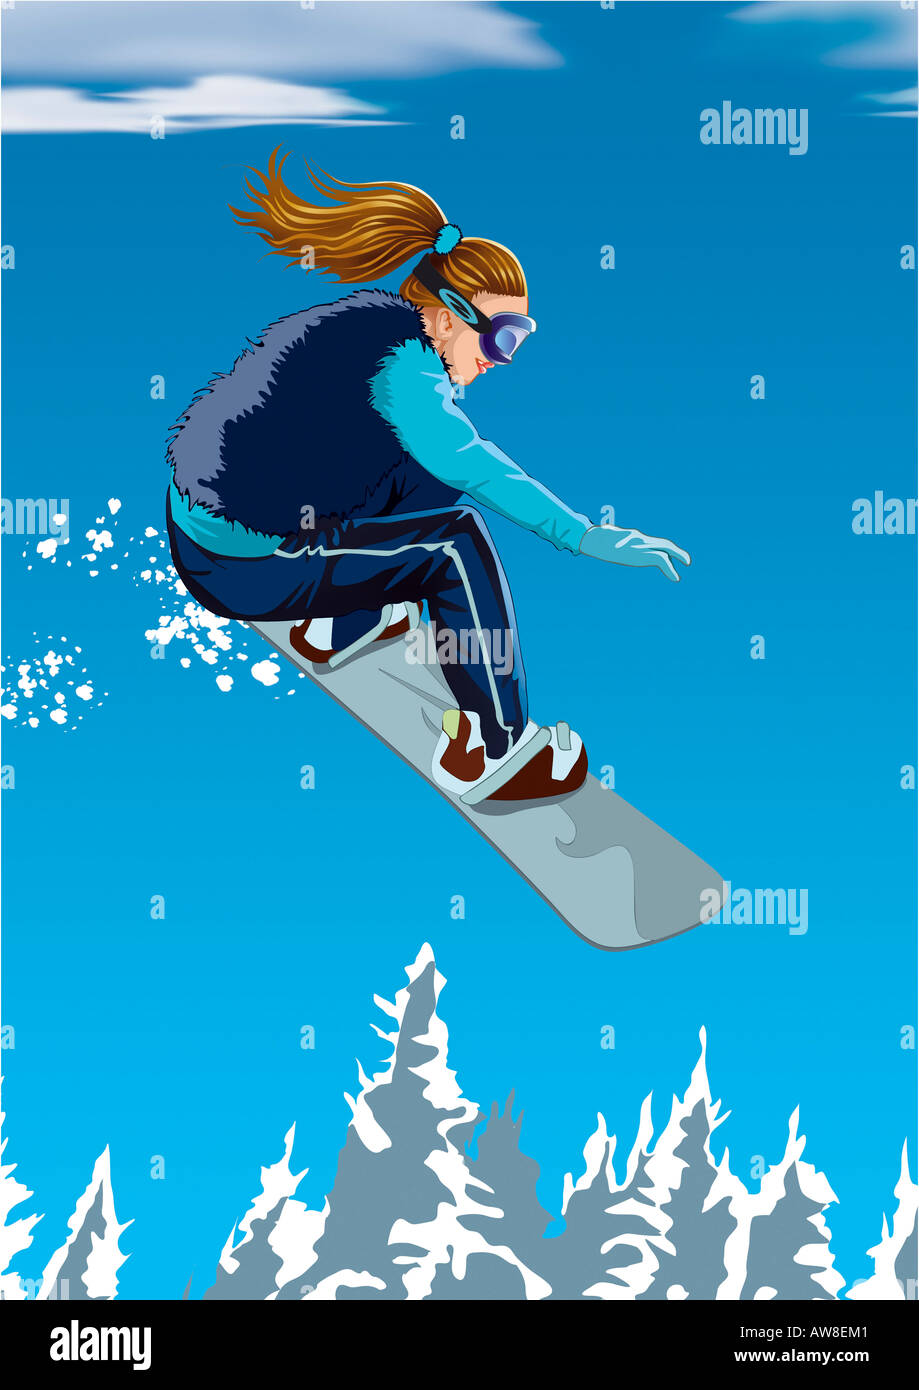 Woman in the air on a snowboard - Stock Image